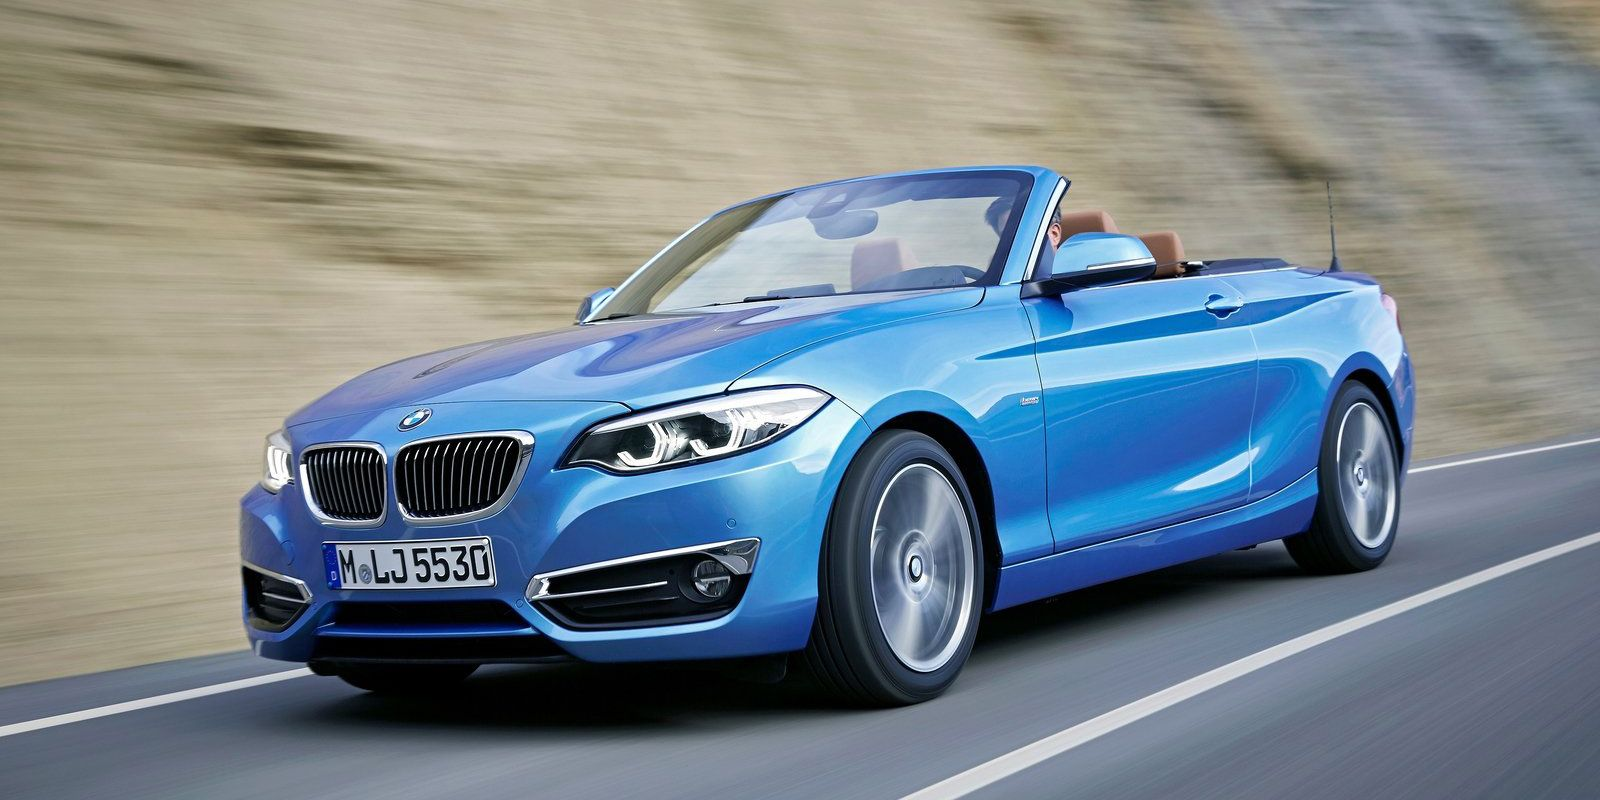 """<p>If you're looking to save a little money over the i8, or you prefer a traditional drivetrain over a hybrid, you can still have fuel-efficient fun in a BMW. The 230i will hit 35 mpg on the highway if you choose the automatic, but <a href=""""http://www.roadandtrack.com/car-culture/a29245/bmw-2-series-comparison-test/"""" target=""""_blank"""" data-tracking-id=""""recirc-text-link"""">it's still a blast to drive</a>. Its 248-horsepower engine is powerful enough to hit 60 mph in either 5.2or 5.3seconds depending on the transmission.</p>"""